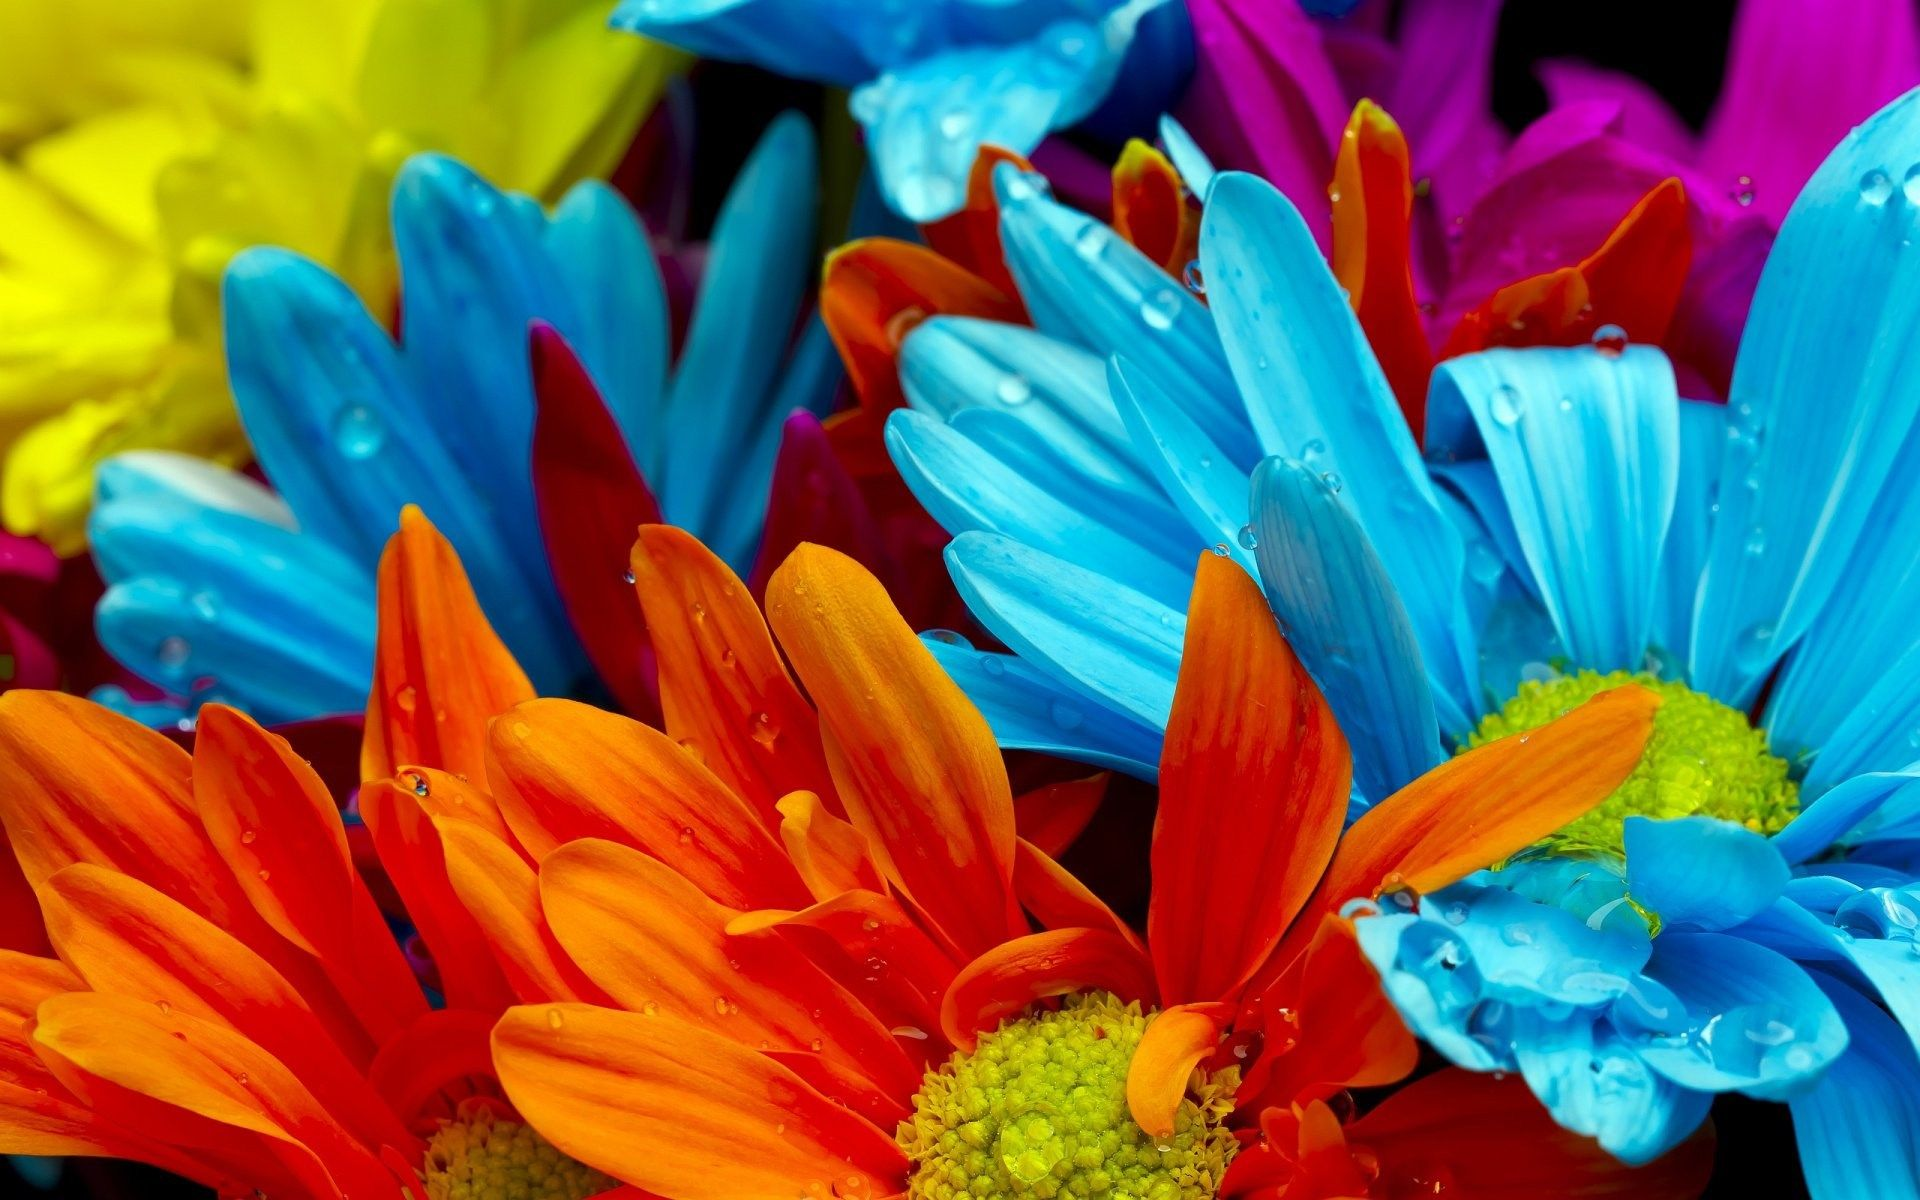 Best download hd wallpaper for desktop colorful flowers